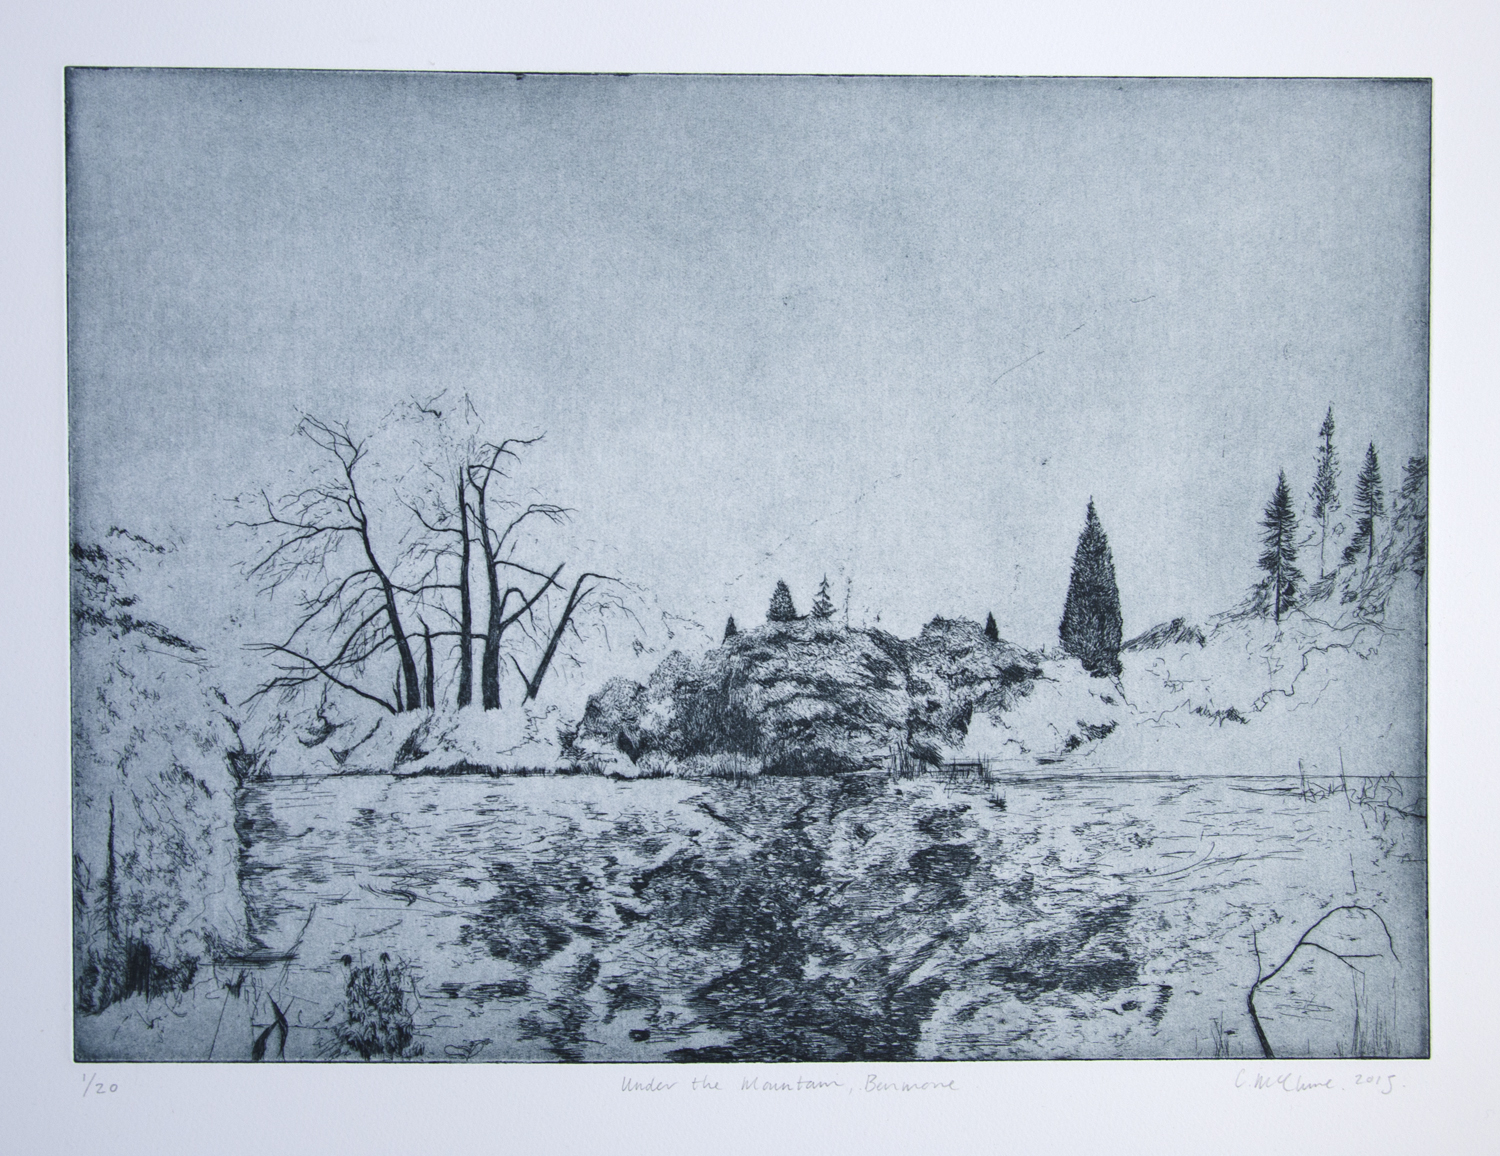 Under the Mountain, Benmore, etching, 2015, 35 x 48.5 cm, £500